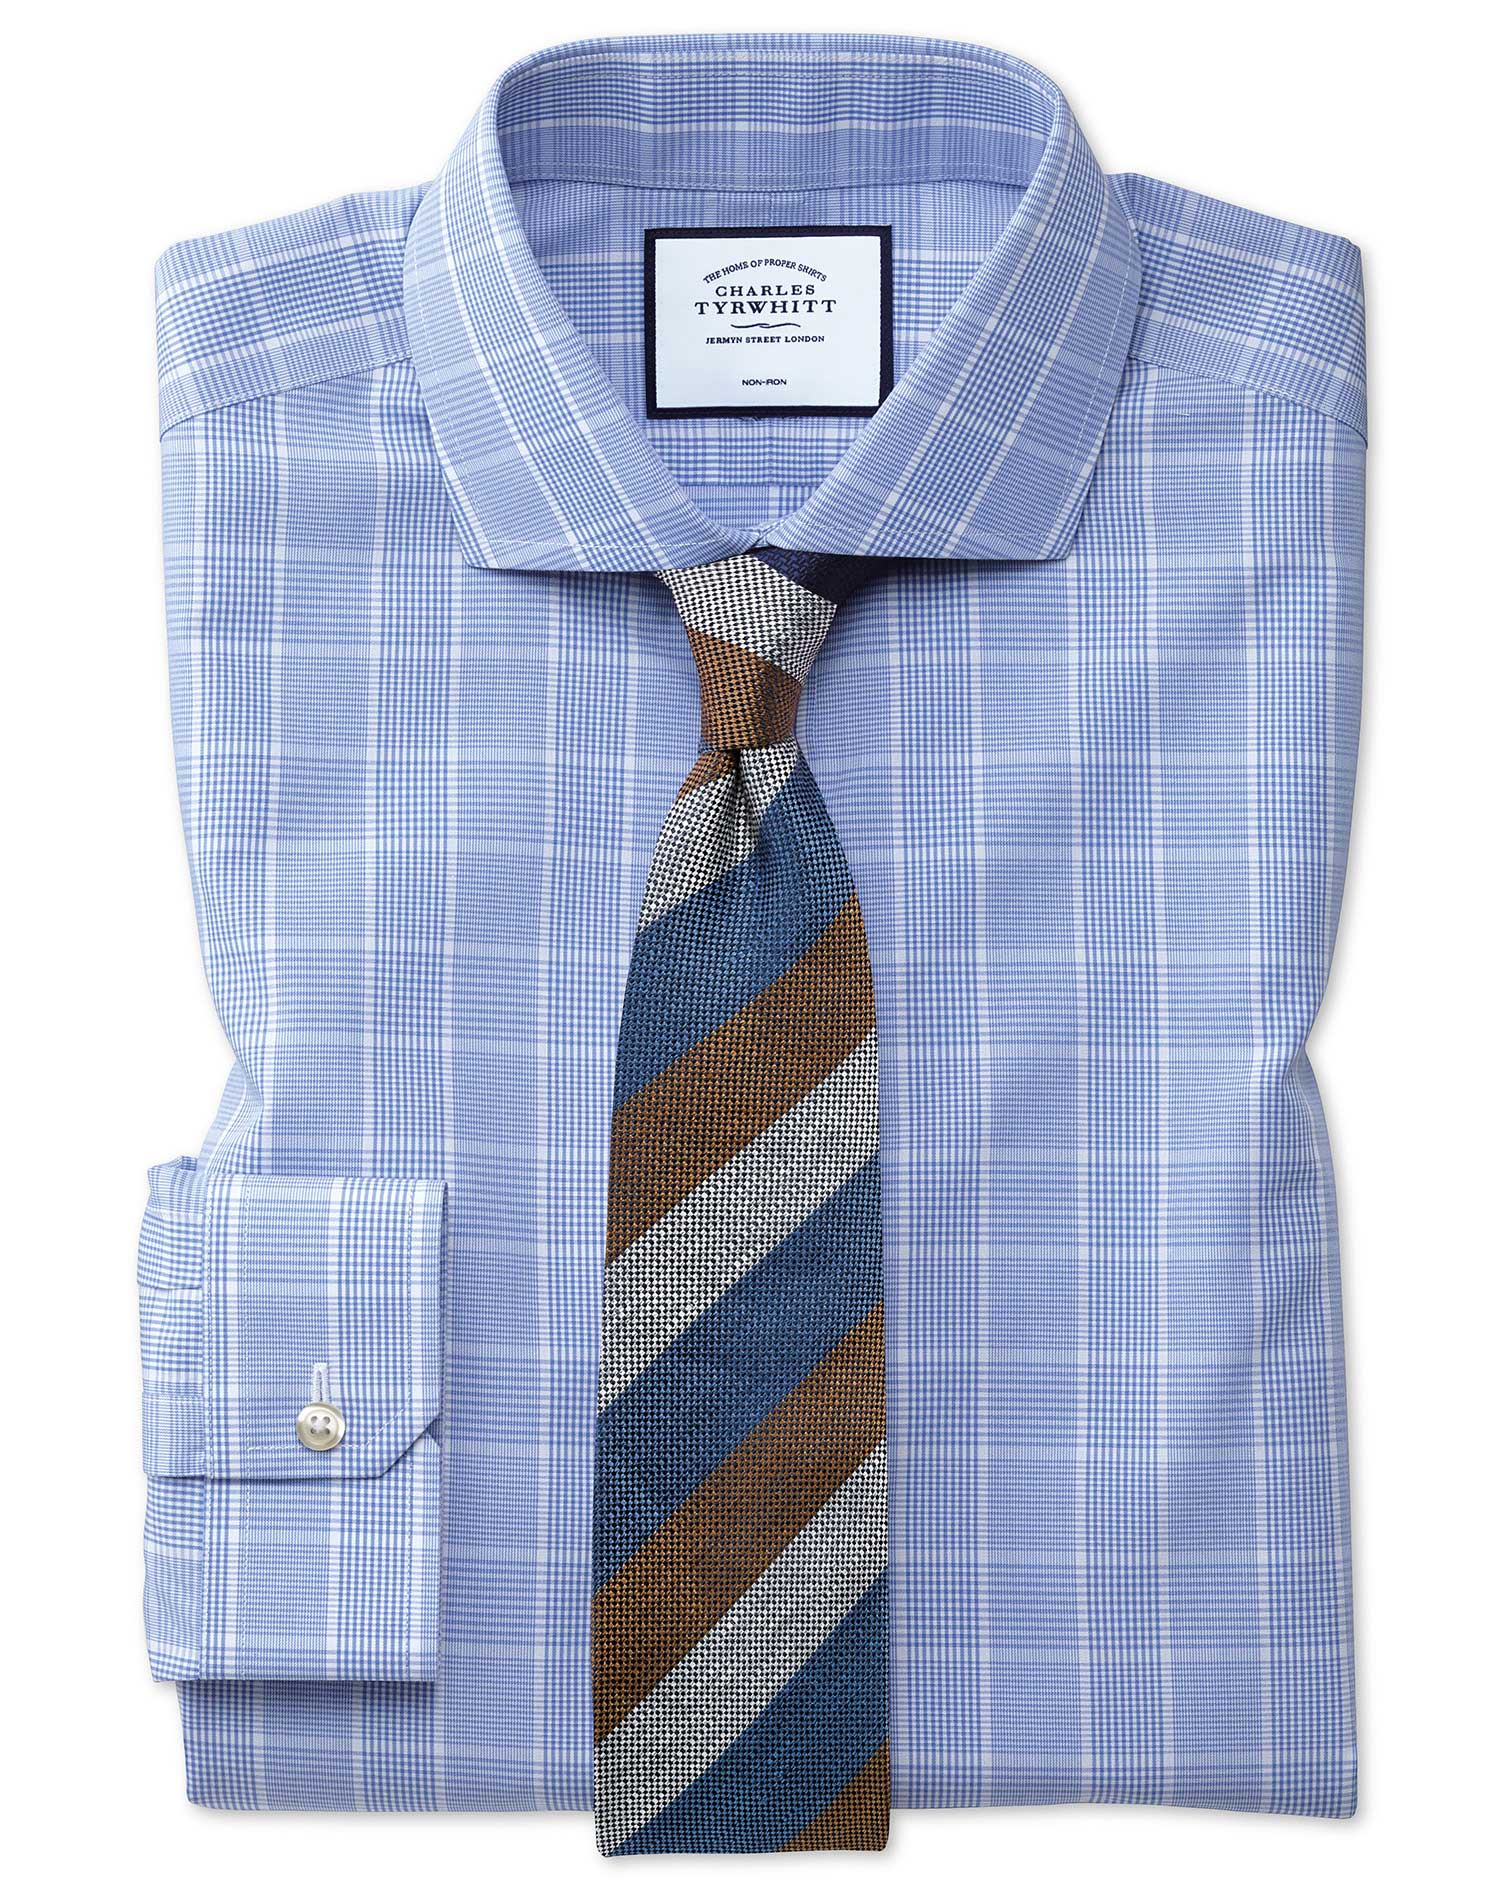 Super Slim Fit Cutaway Non-Iron Prince Of Wales Mid Blue Cotton Formal Shirt Single Cuff Size 16.5/3